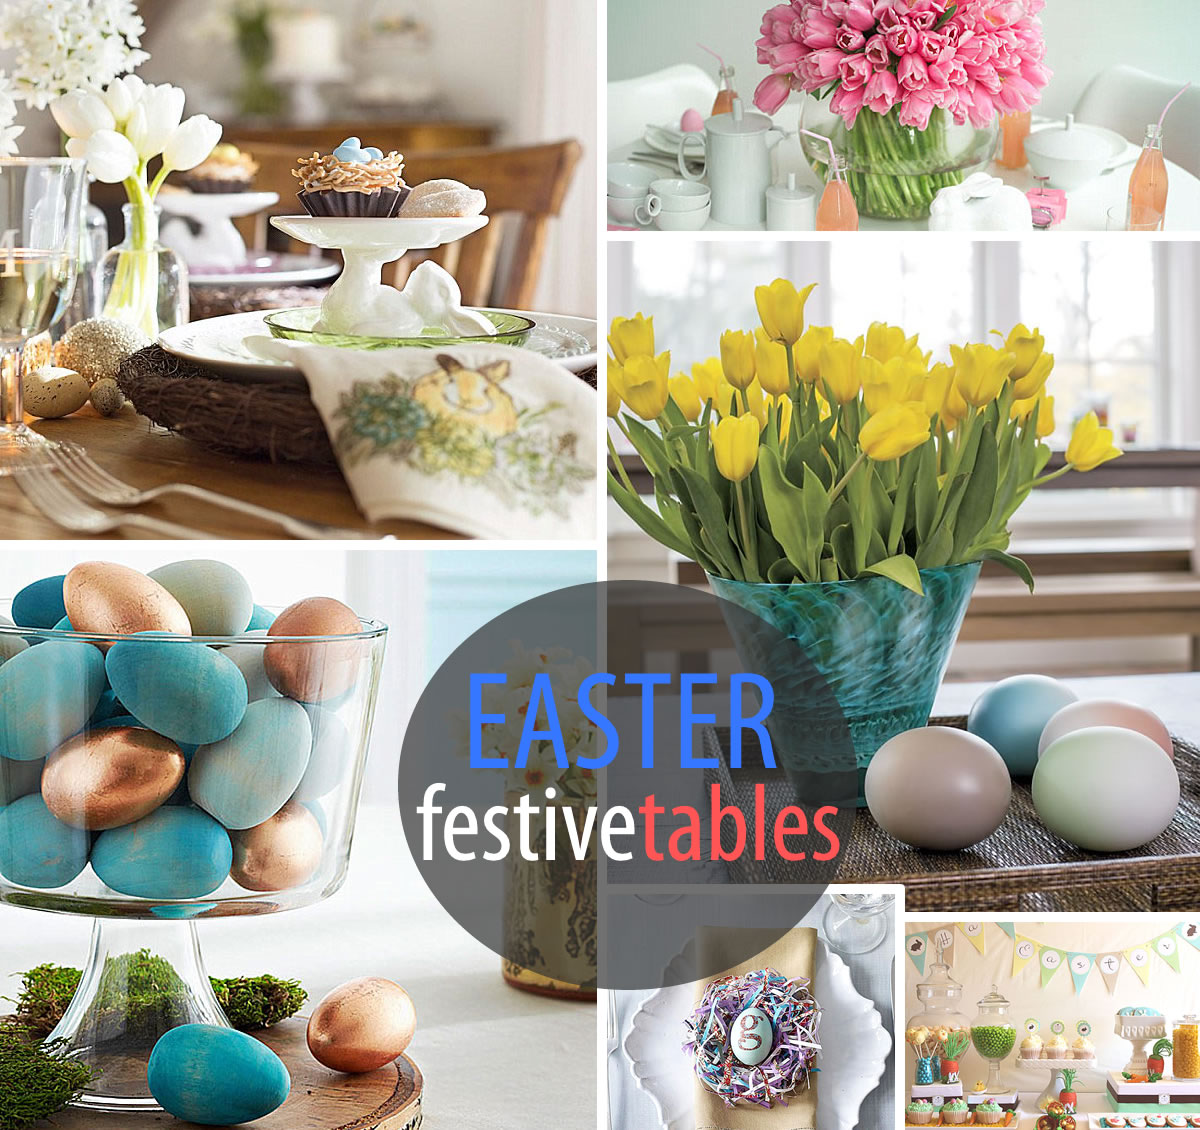 easter festive table 10 Festive Easter Table Settings